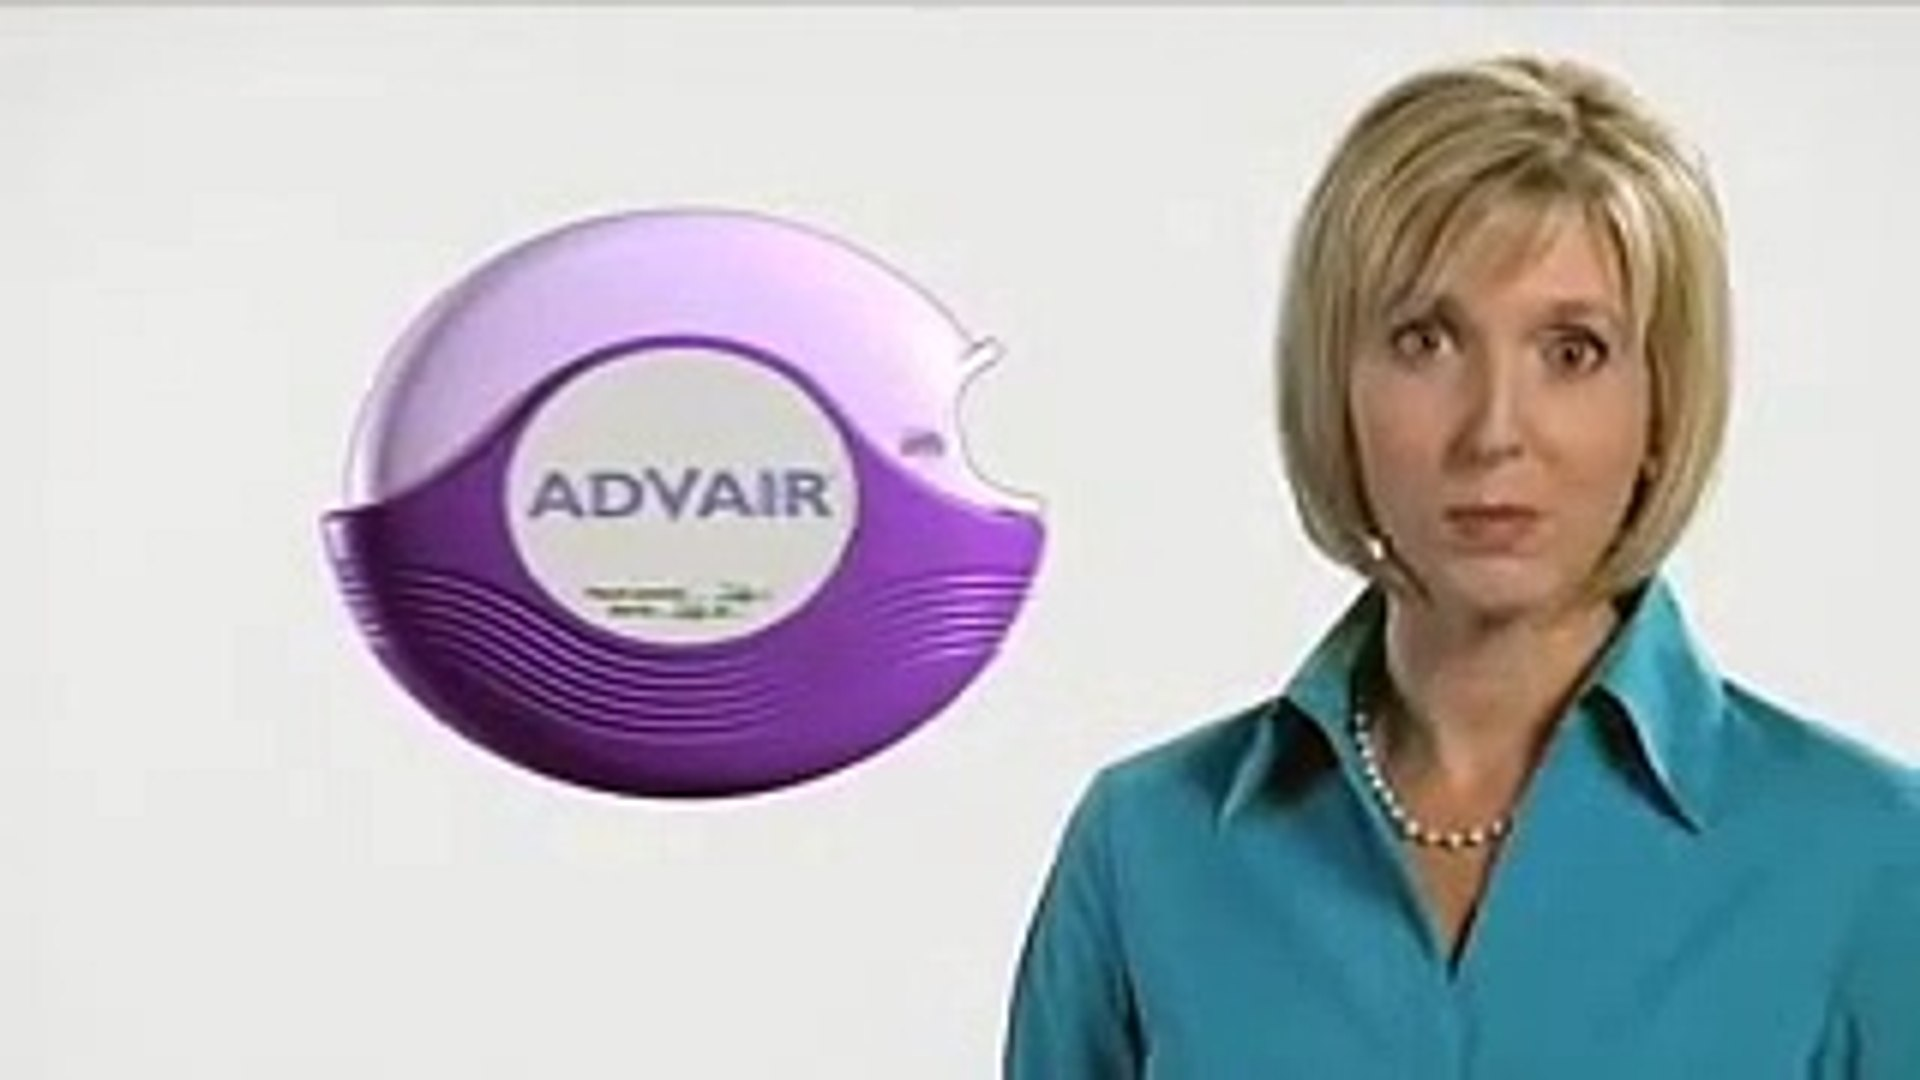 How To Use Advair Diskus Adapted From Advair Com Video Dailymotion